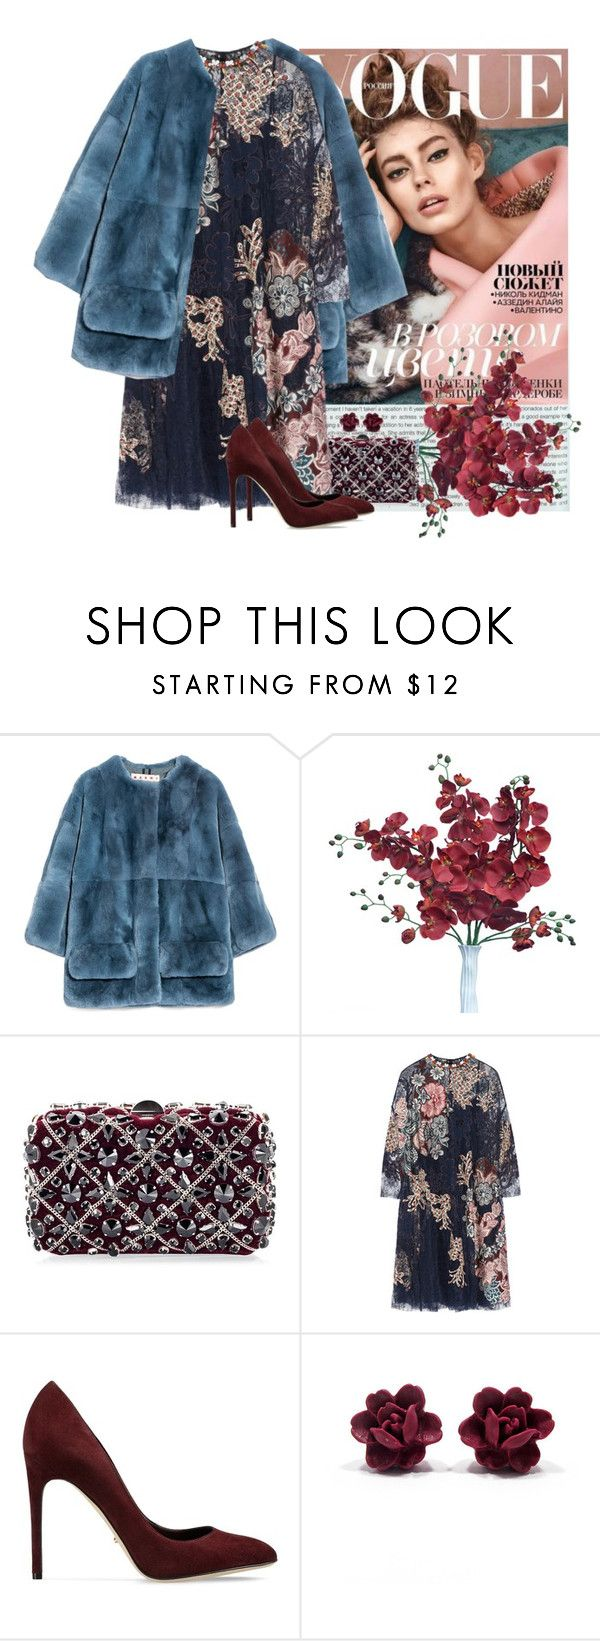 """""""FAB DRESS.."""" by sasoula ❤ liked on Polyvore featuring Marni, Rodo, Biyan, Sergio Rossi, women's clothing, women, female, woman, misses and juniors"""